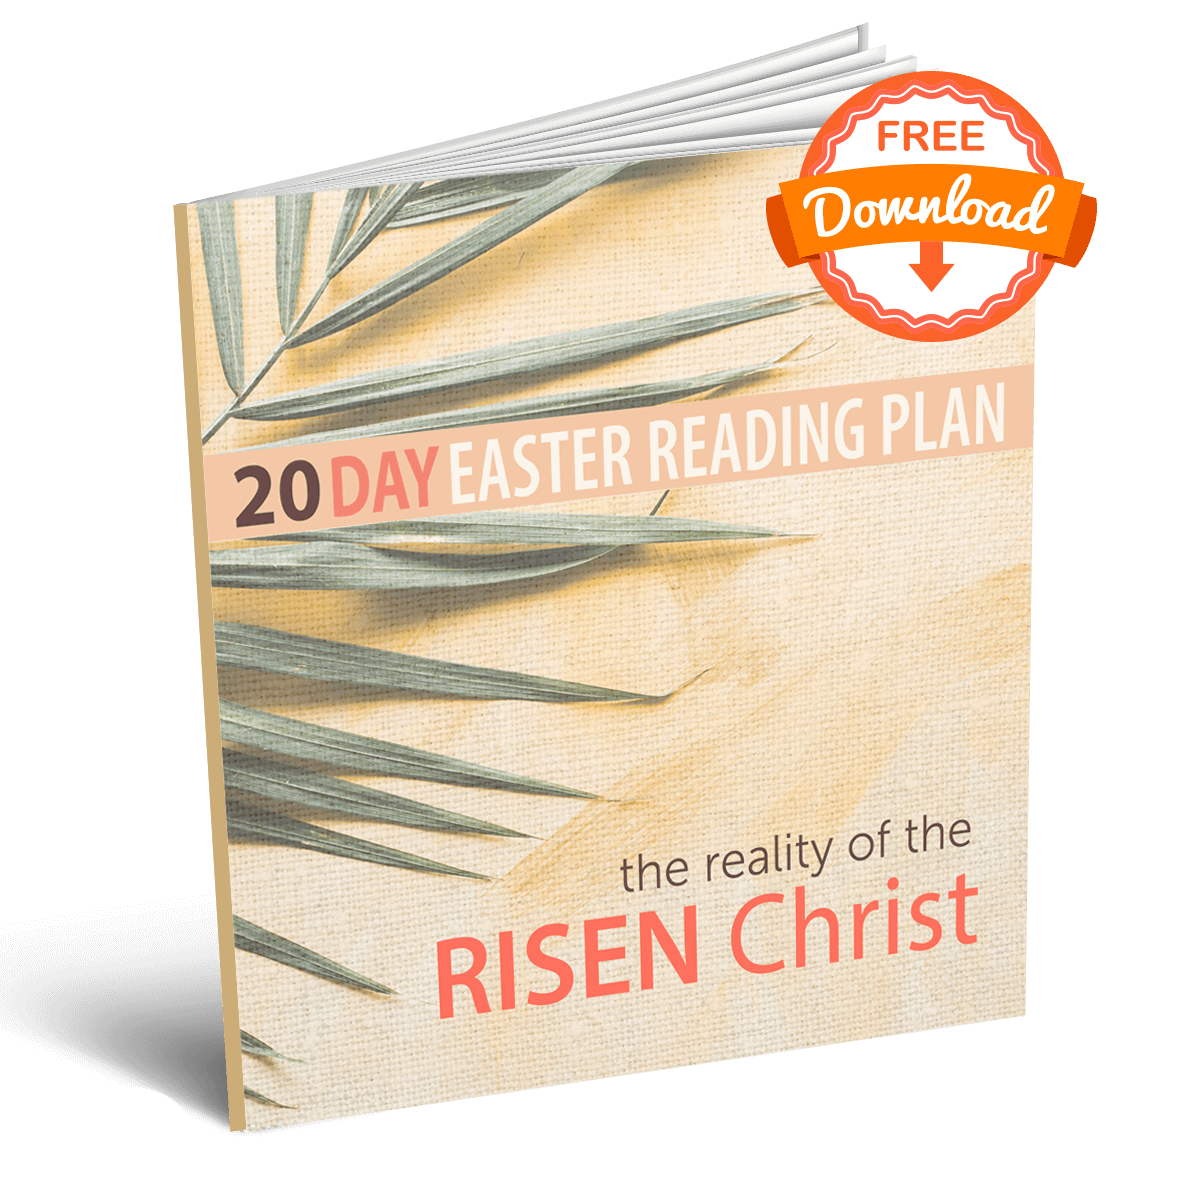 The Reality of the Risen Christ Reading Plan